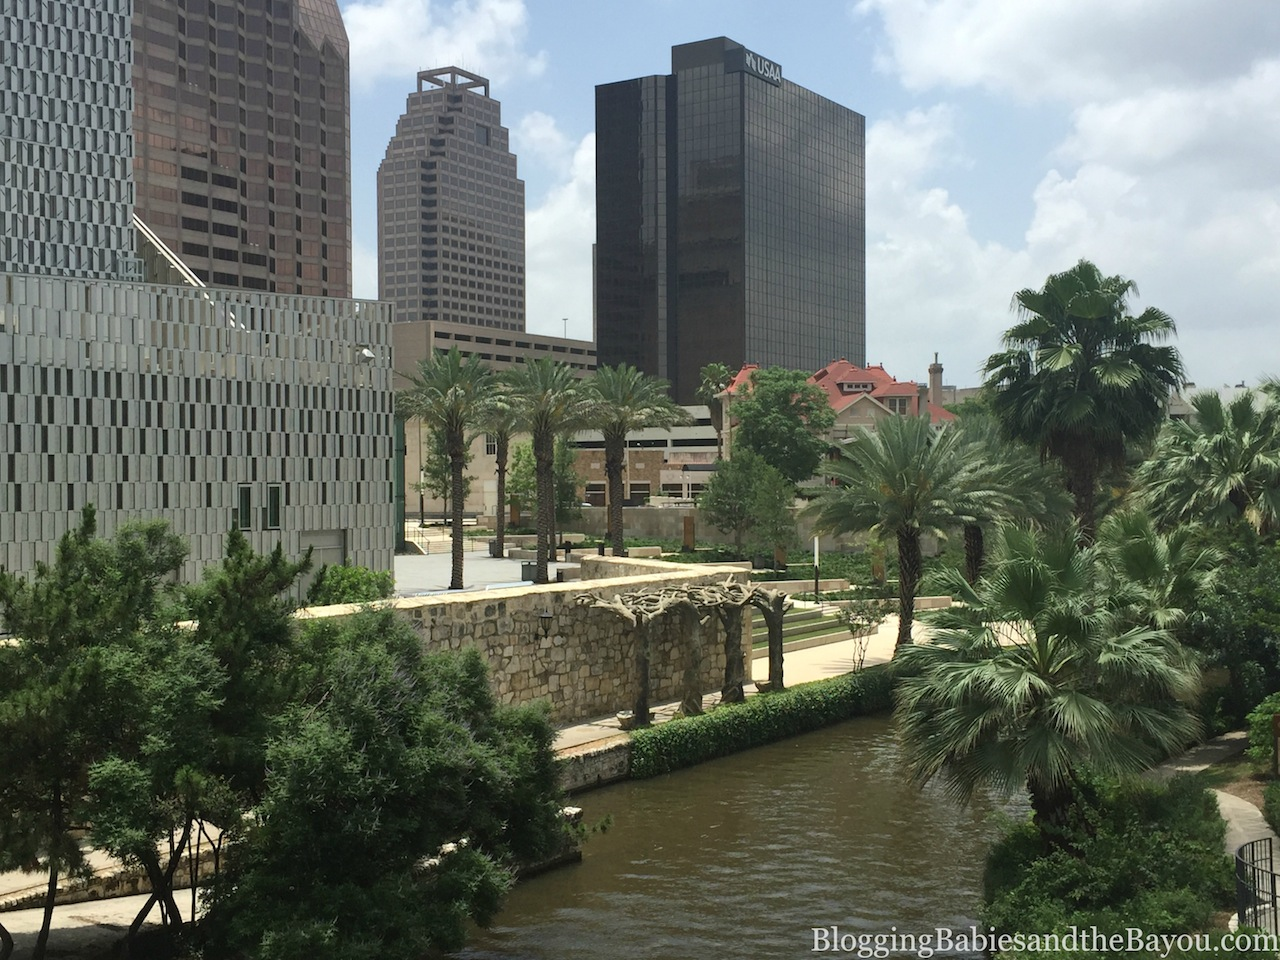 Beautiful Landscapes & Cityscapes of San Antonio - City Sightseeing San Antonio, Hop On - Hop Off Bus Tours #BayouTravel